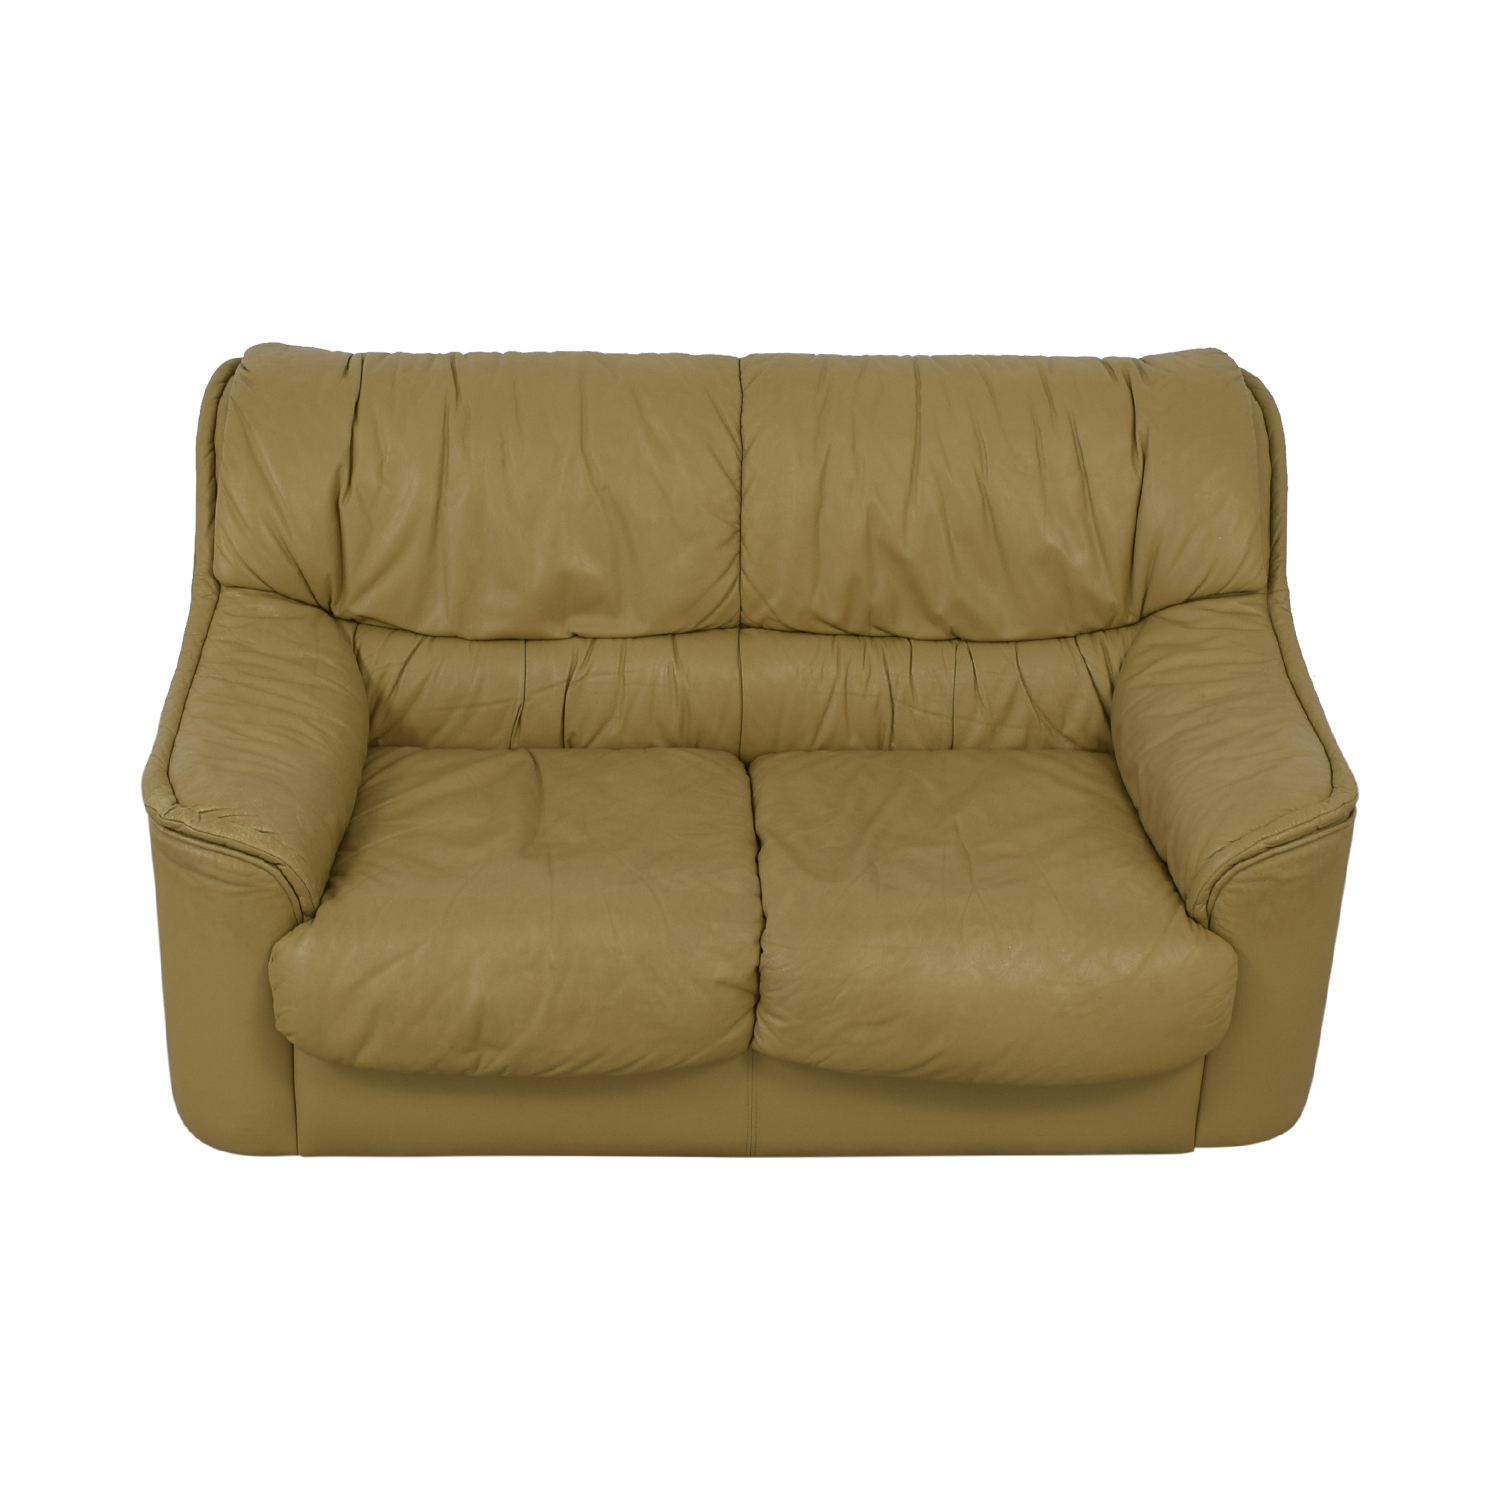 Taupe Two-Cushion Sofa on sale